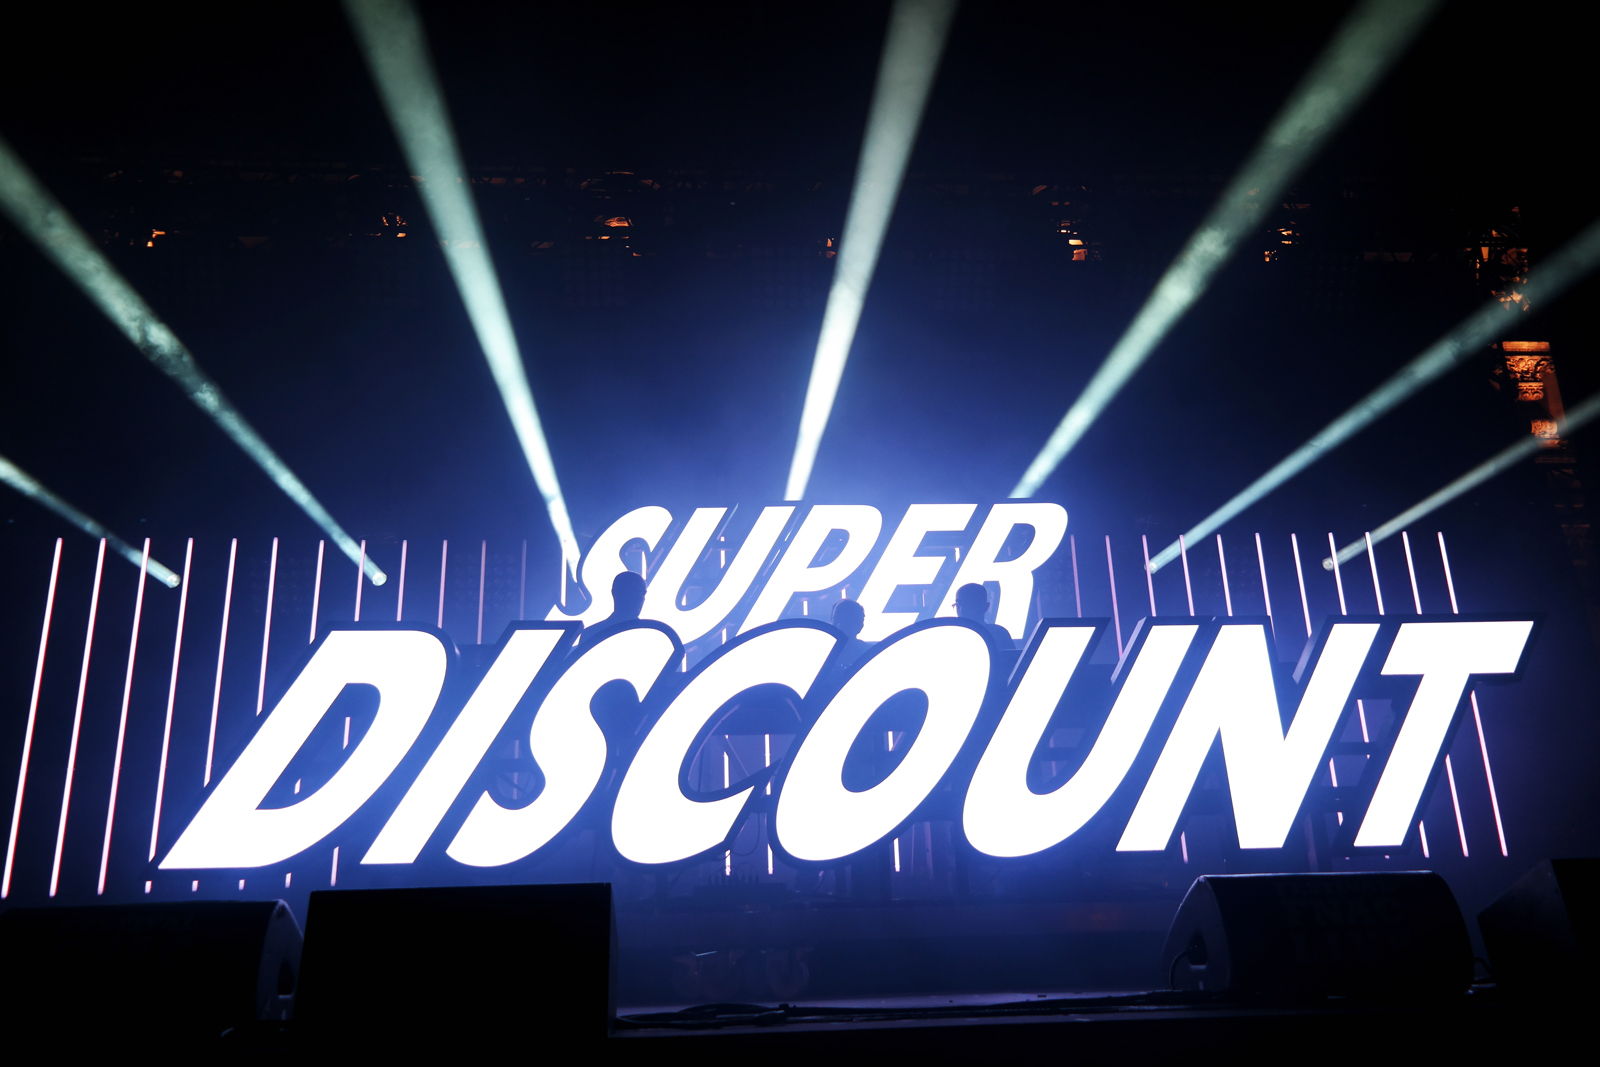 Etienne-de-Crécy-Super-Discount-3-live-fnaclive-concert-dj-set-festival-musique-stage-lights-photo-scène-by-united-states-of-paris-blog